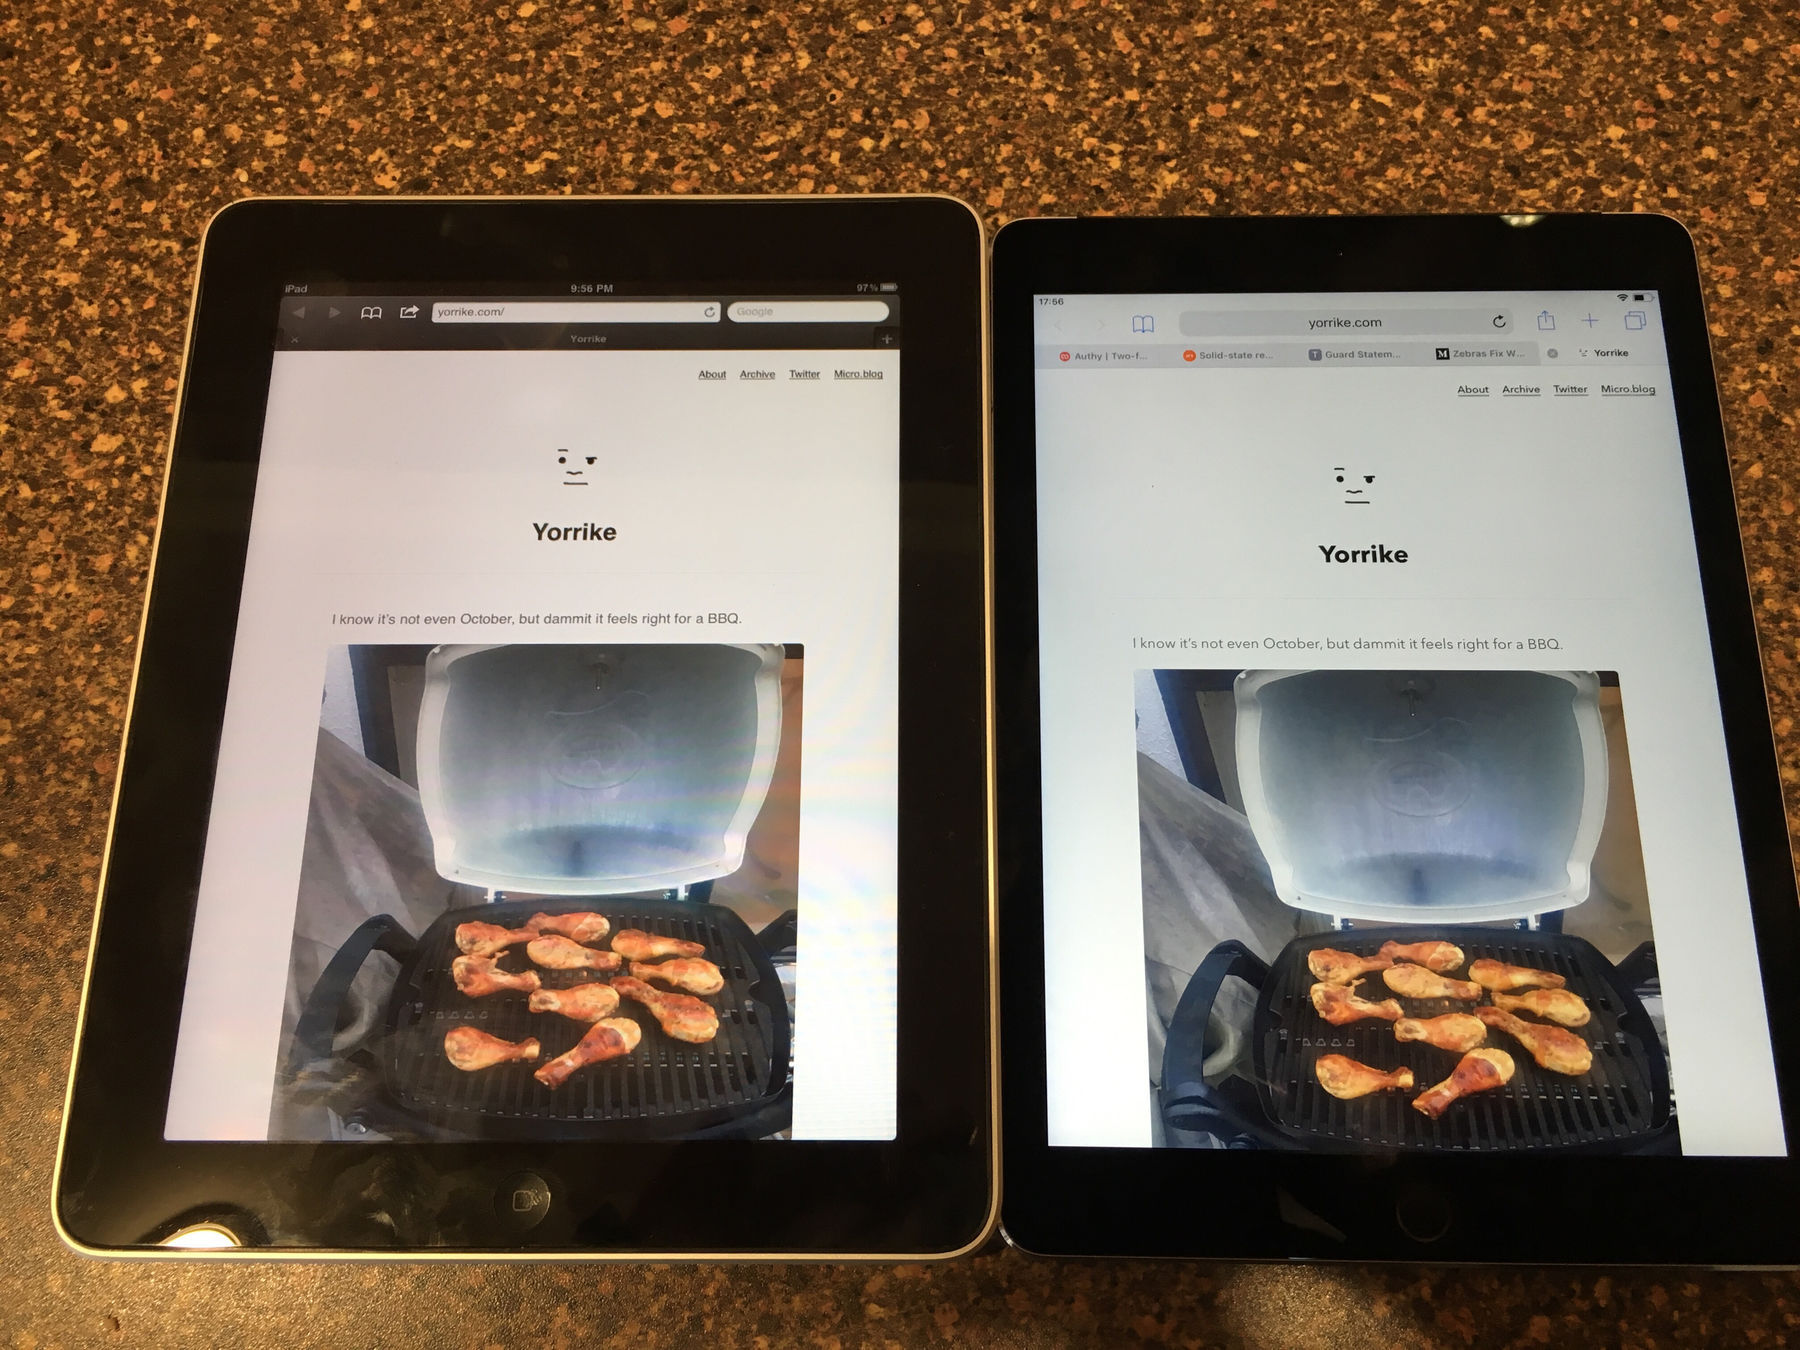 An original iPad and an iPad Air 2, side by side screen up. The original iPad is a little larger than the iPad Air 2, with much arger side bezels.